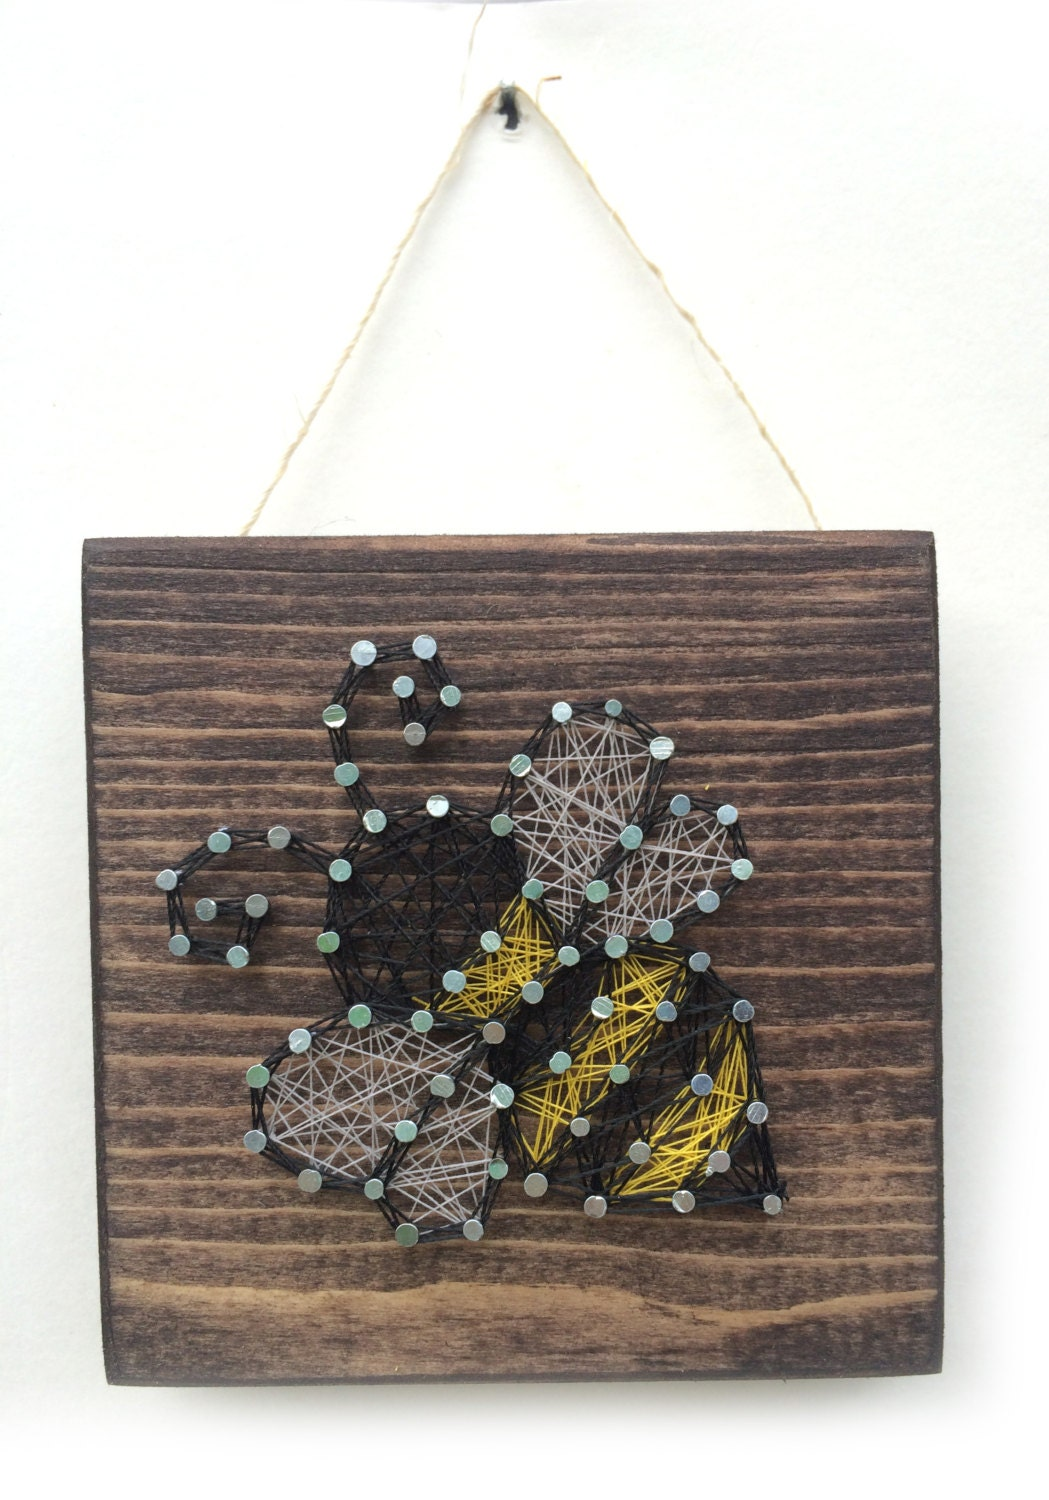 Bumble bee string art home or office decor for Honey bee decorations for your home